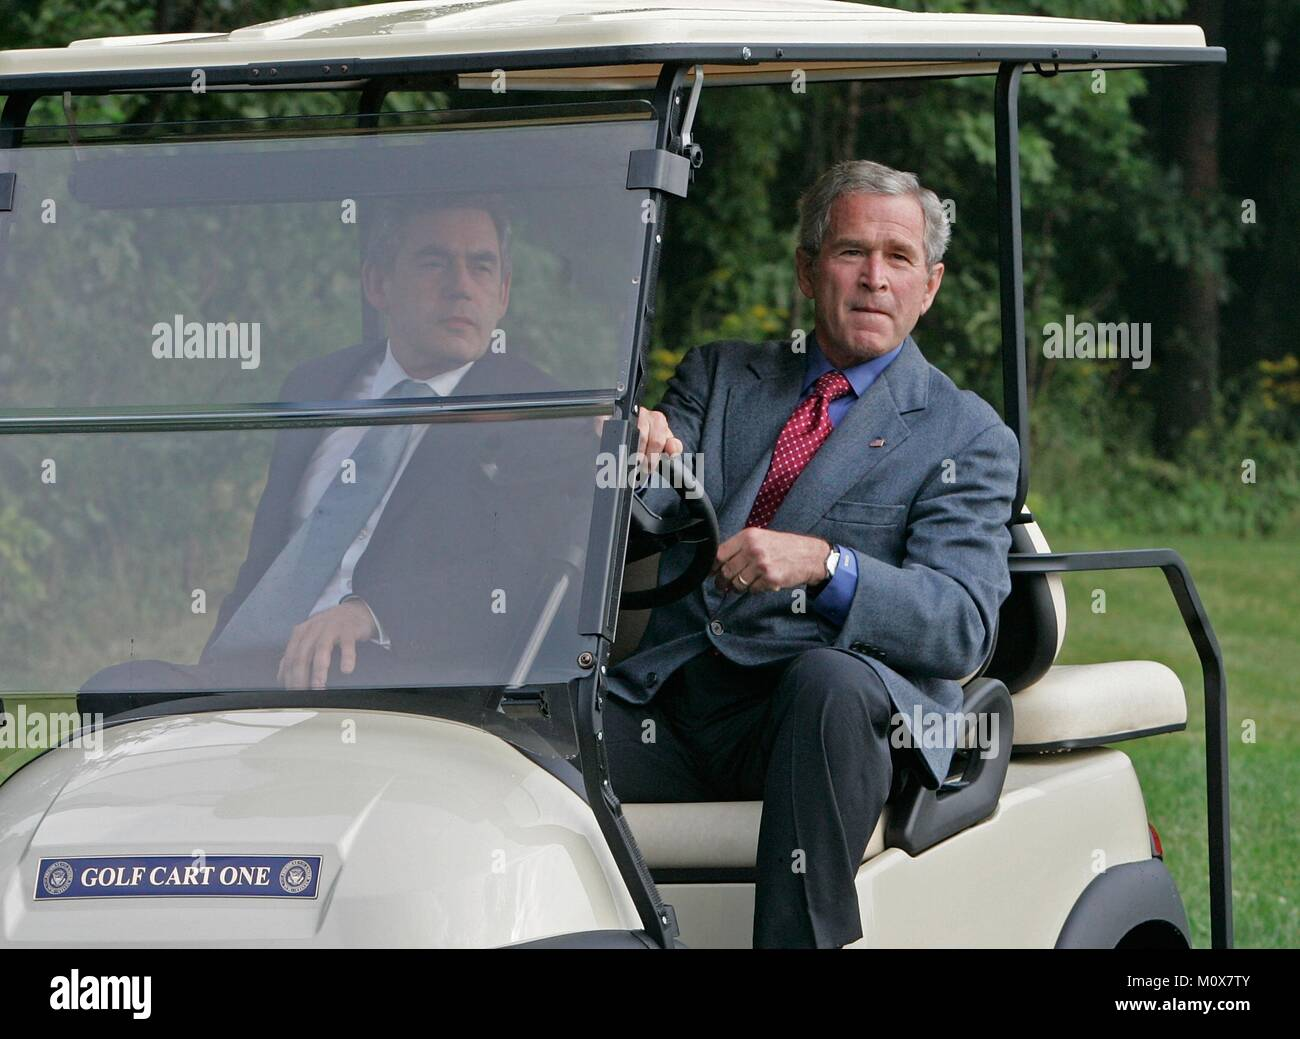 CAMP DAVID, MD - JULY 29: (AFP OUT) U.S. President George W. Bush (R) gives British Prime Minister Gordon Brown - Stock Image